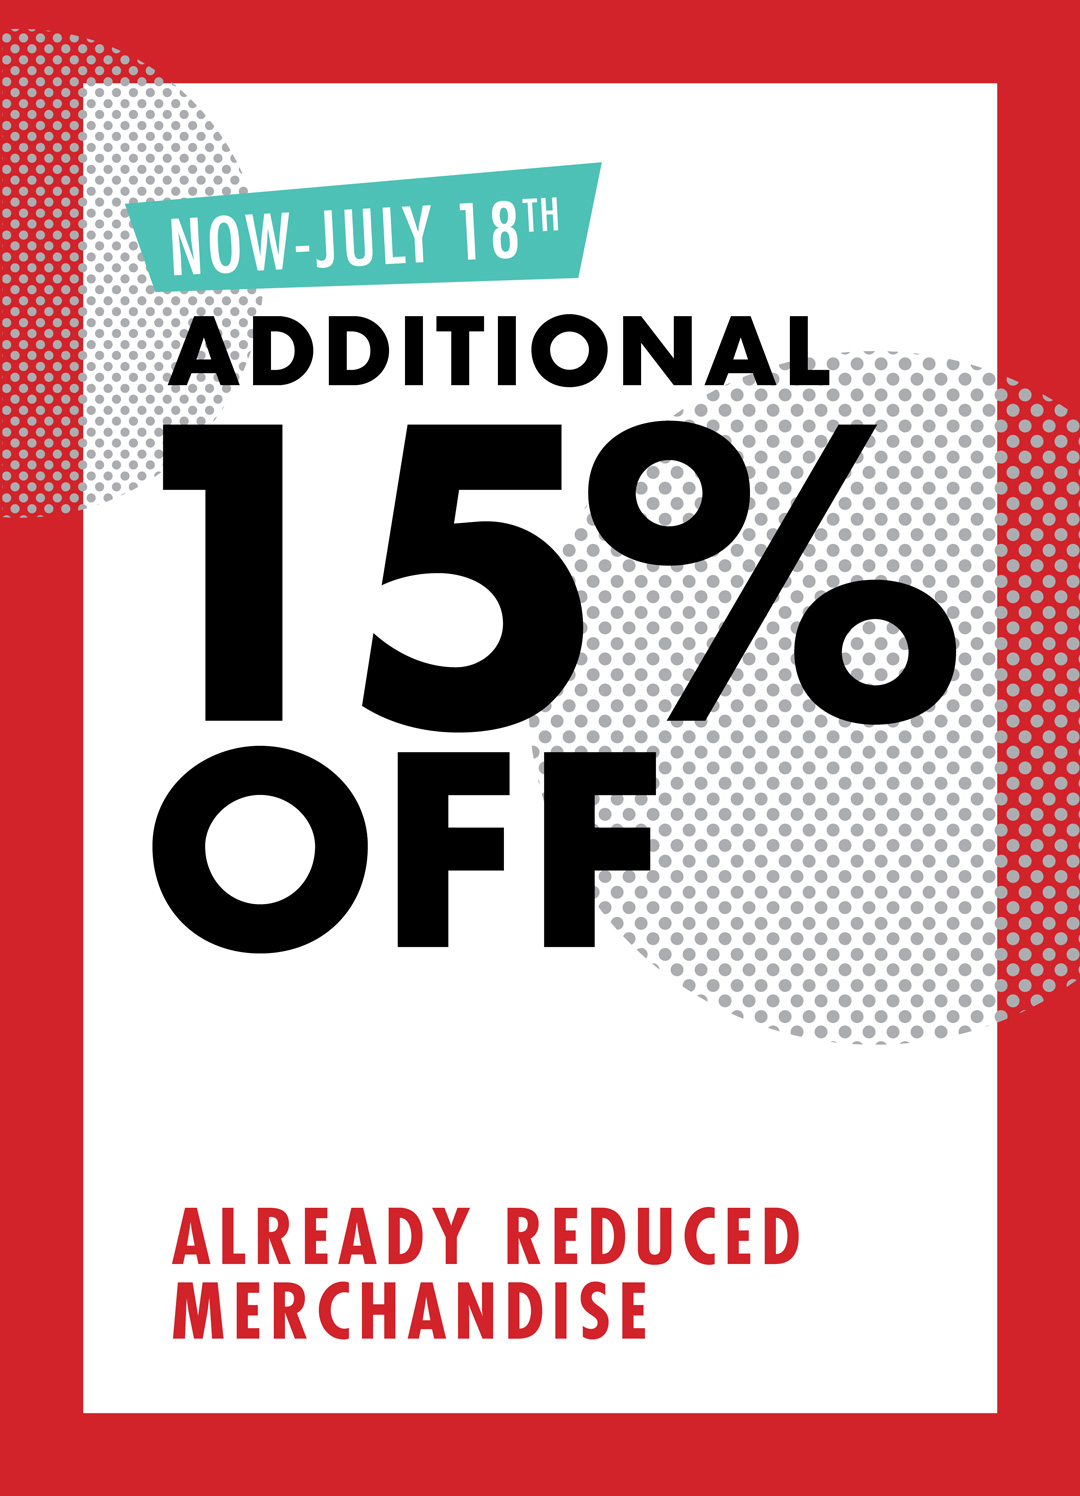 Additional 15% Off